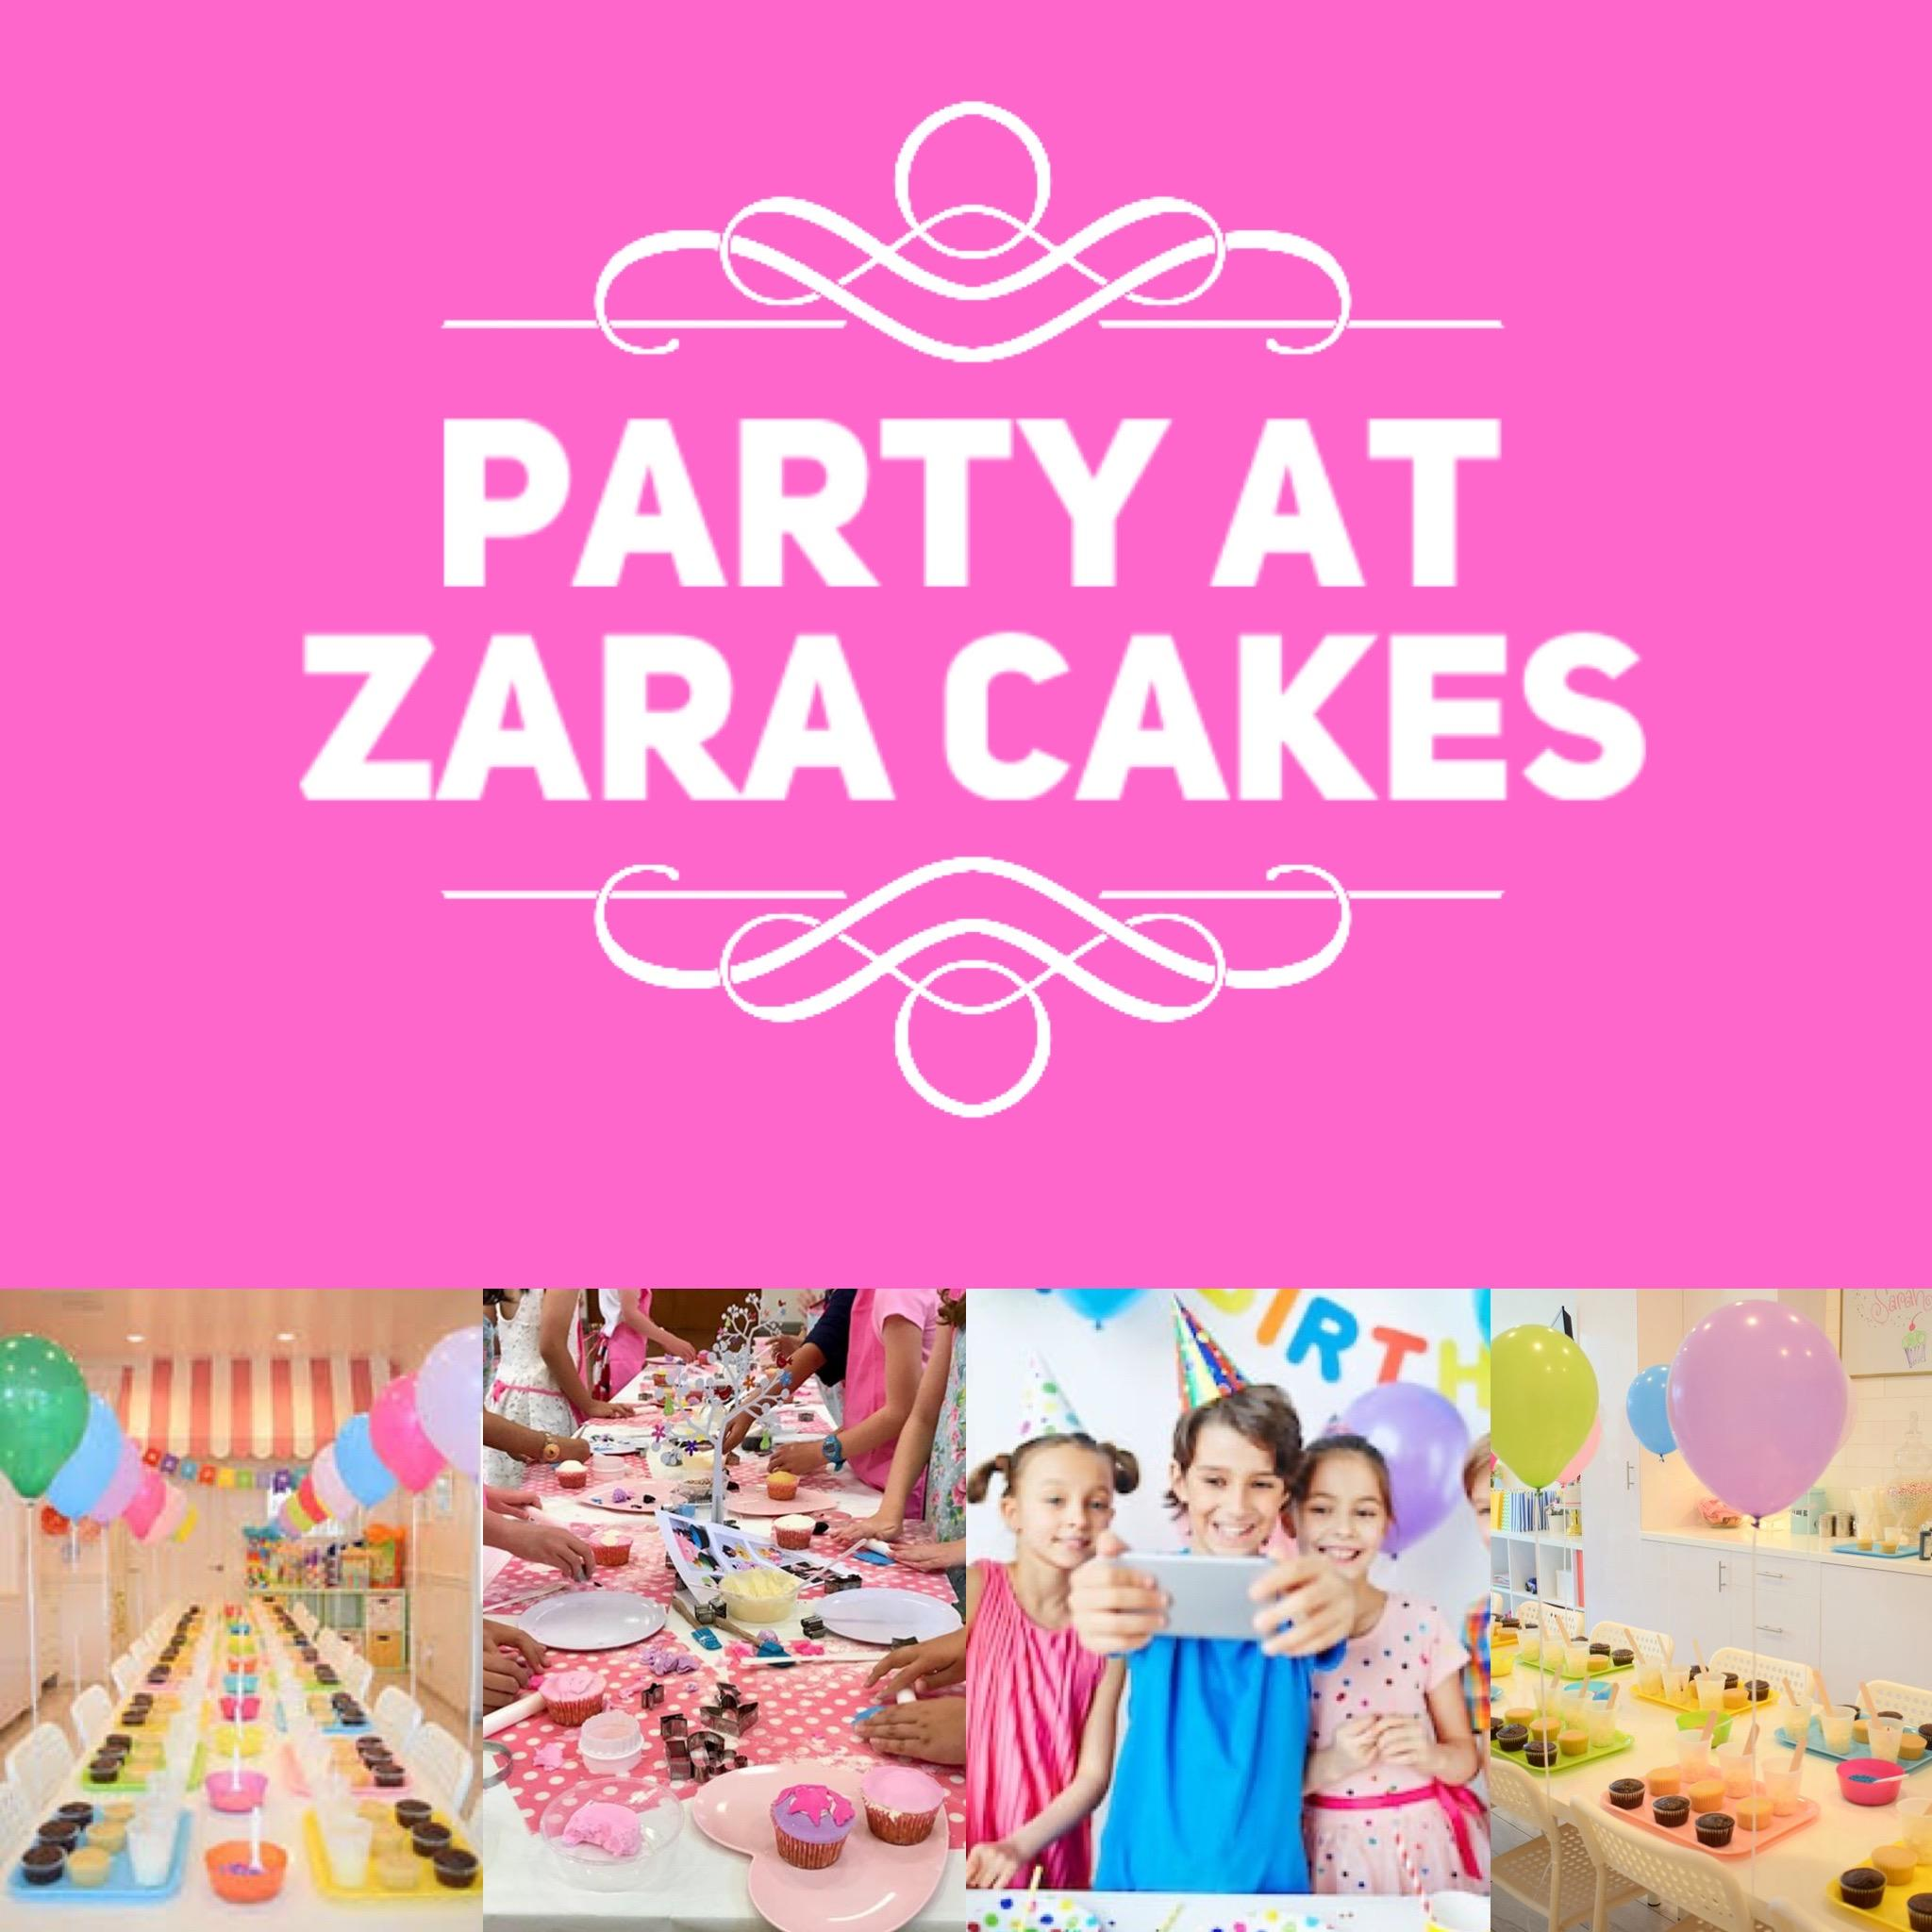 ULTIMATE PACKAGE CUPCAKE PARTY - £350